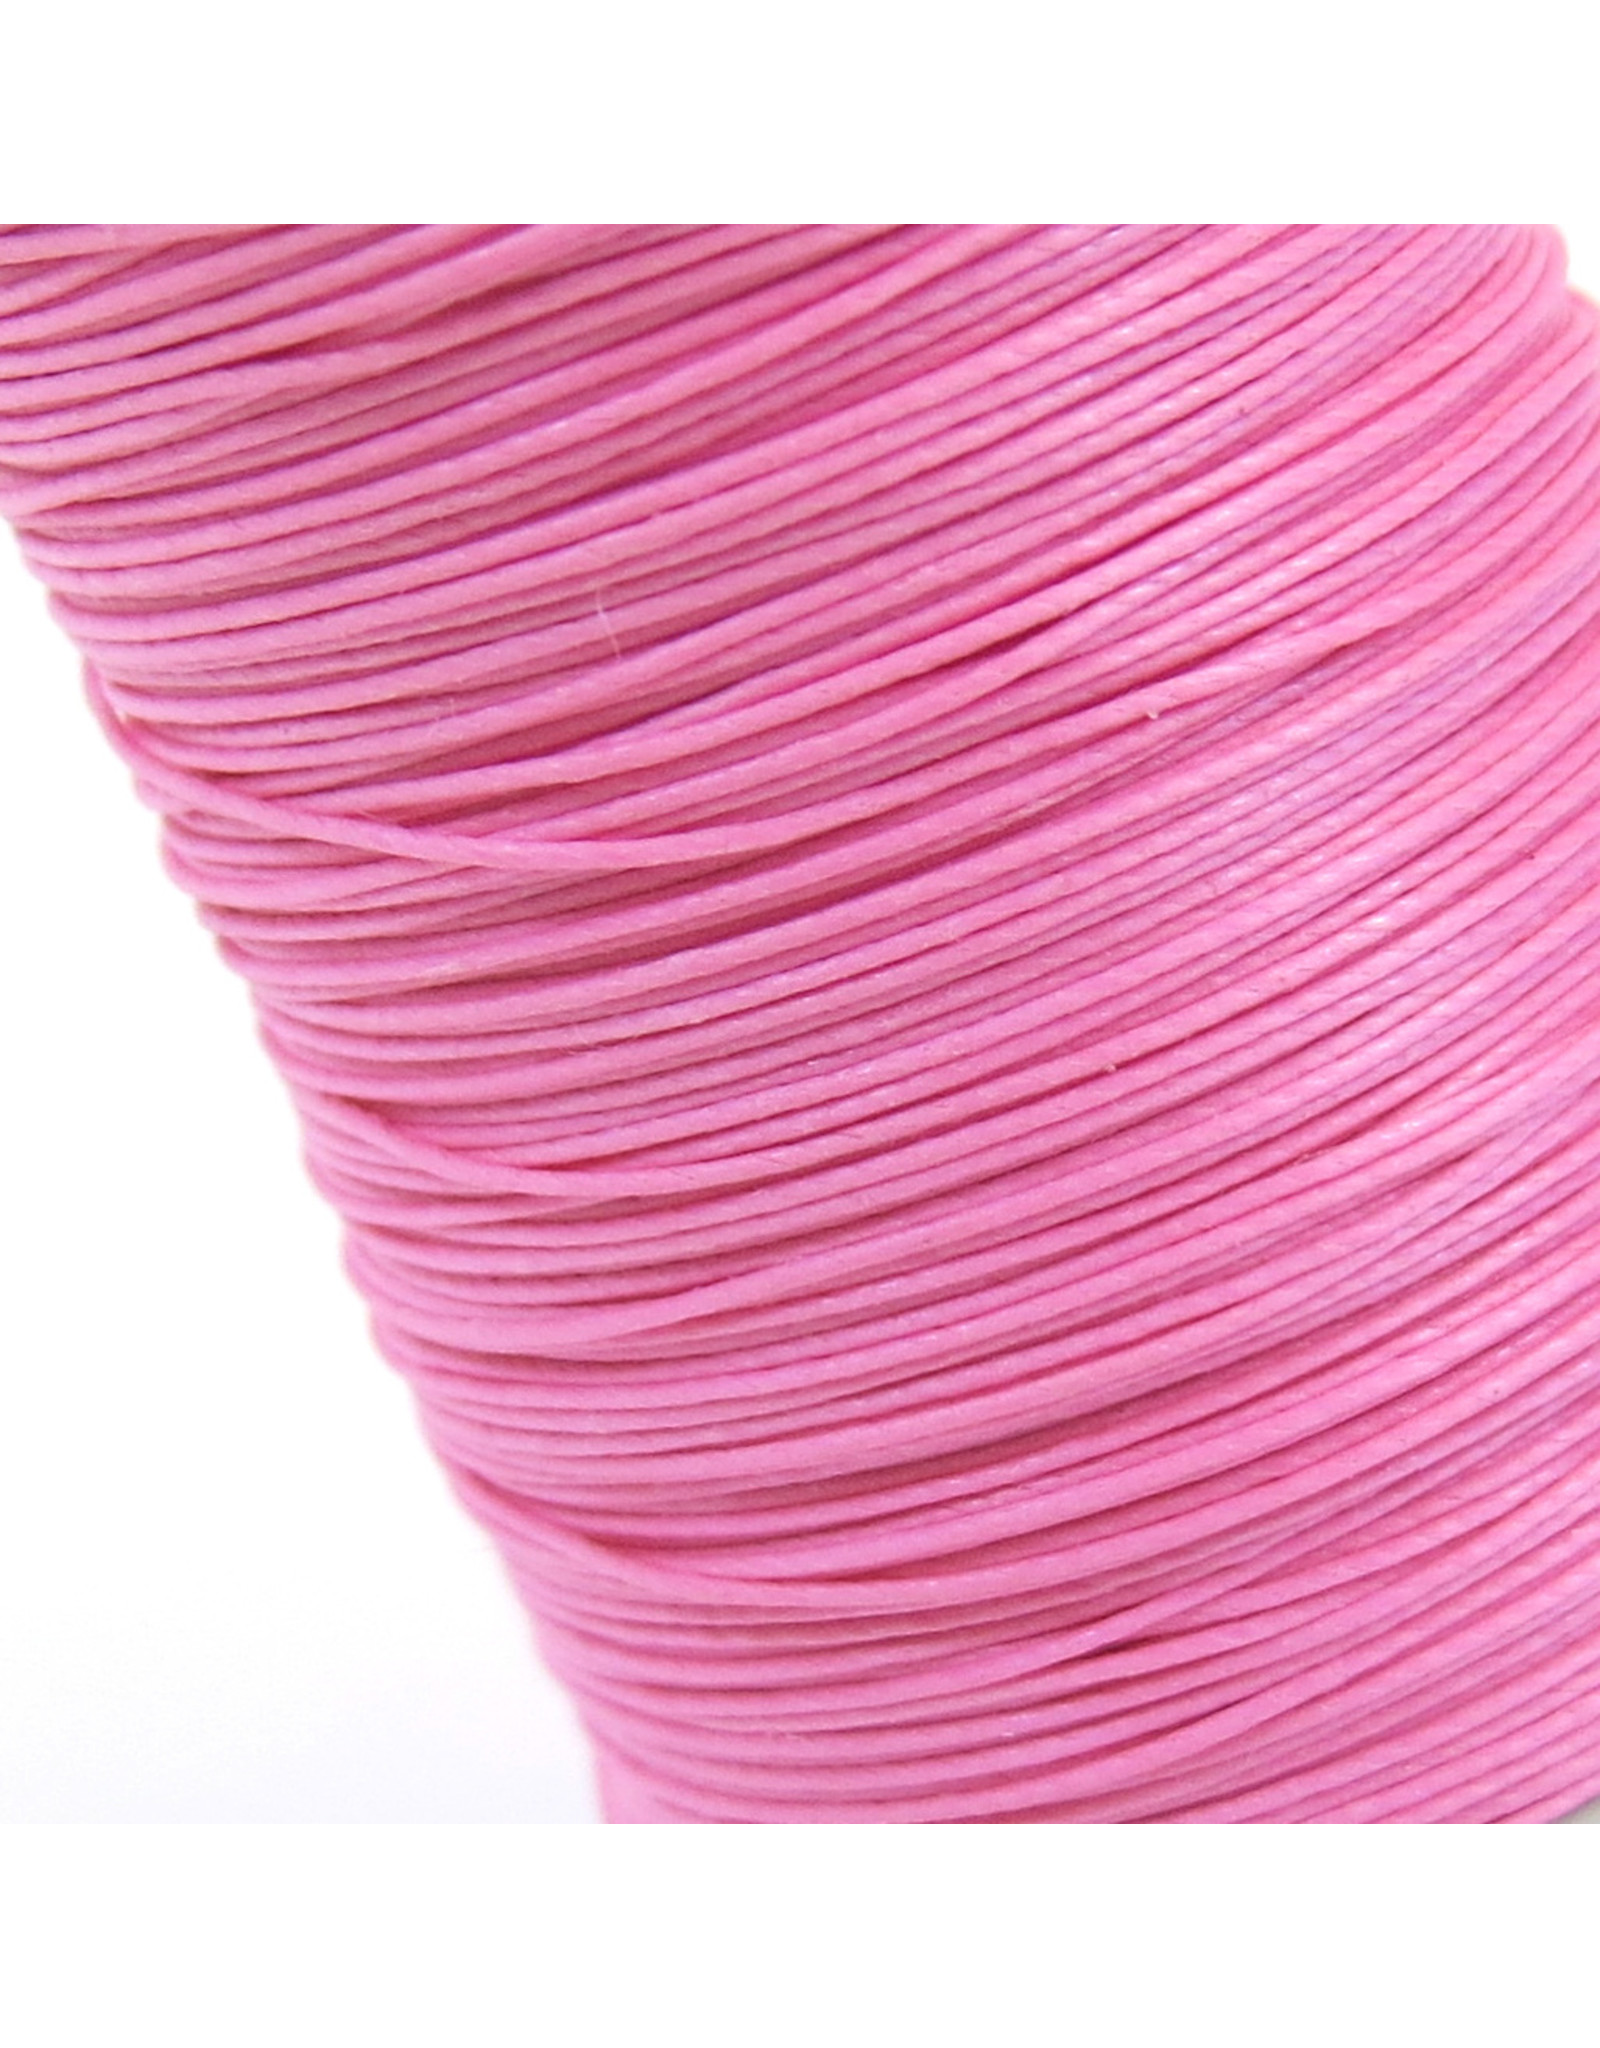 Hand sewing thread Pink